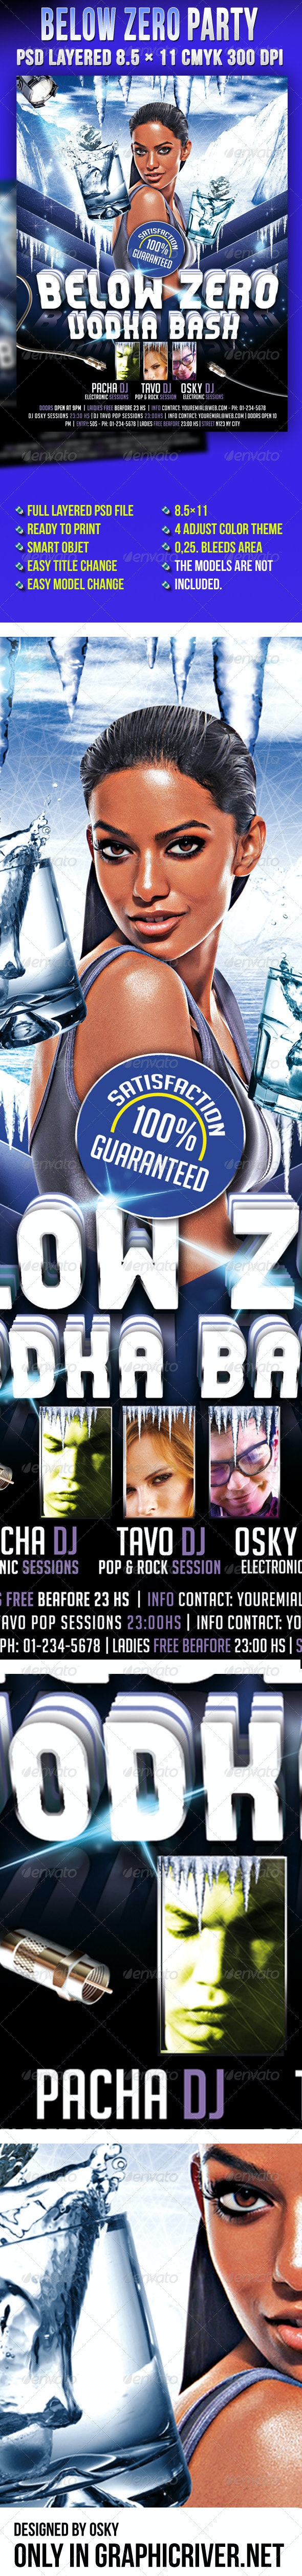 Below Zero Party - Clubs & Parties Events